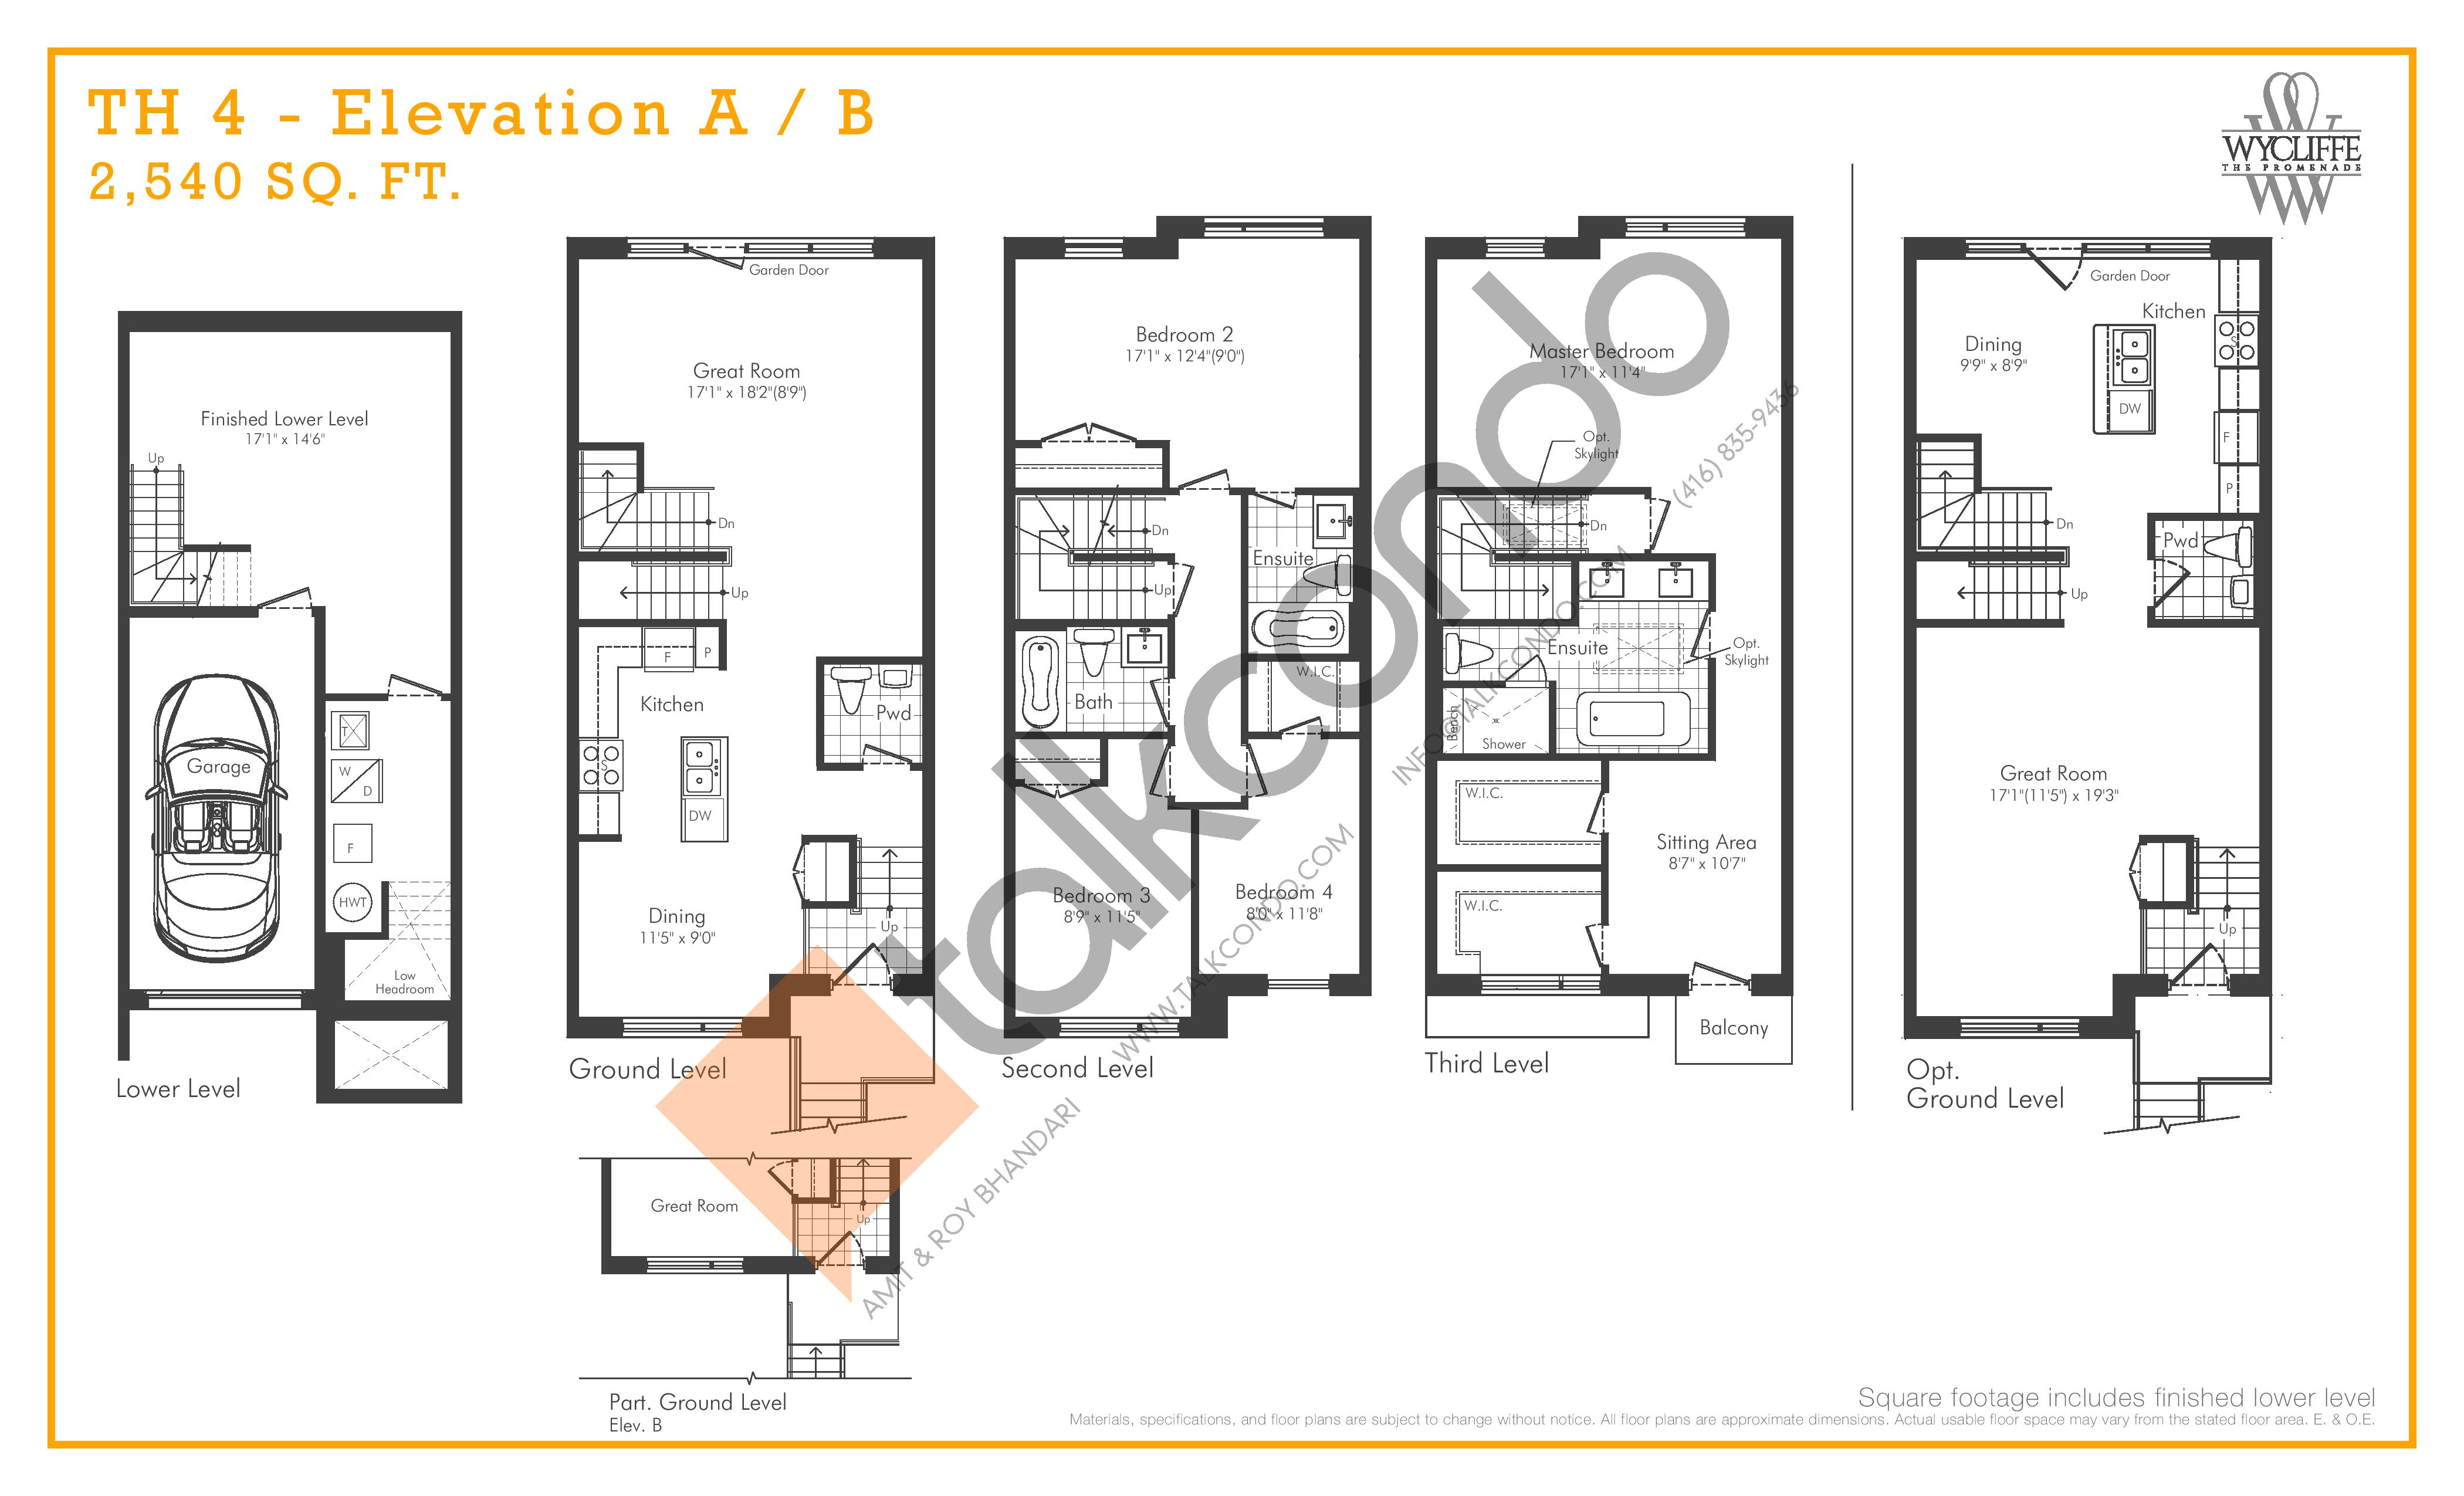 TH 4 - Elevation A/B Floor Plan at Wycliffe at the Promenade - 2540 sq.ft